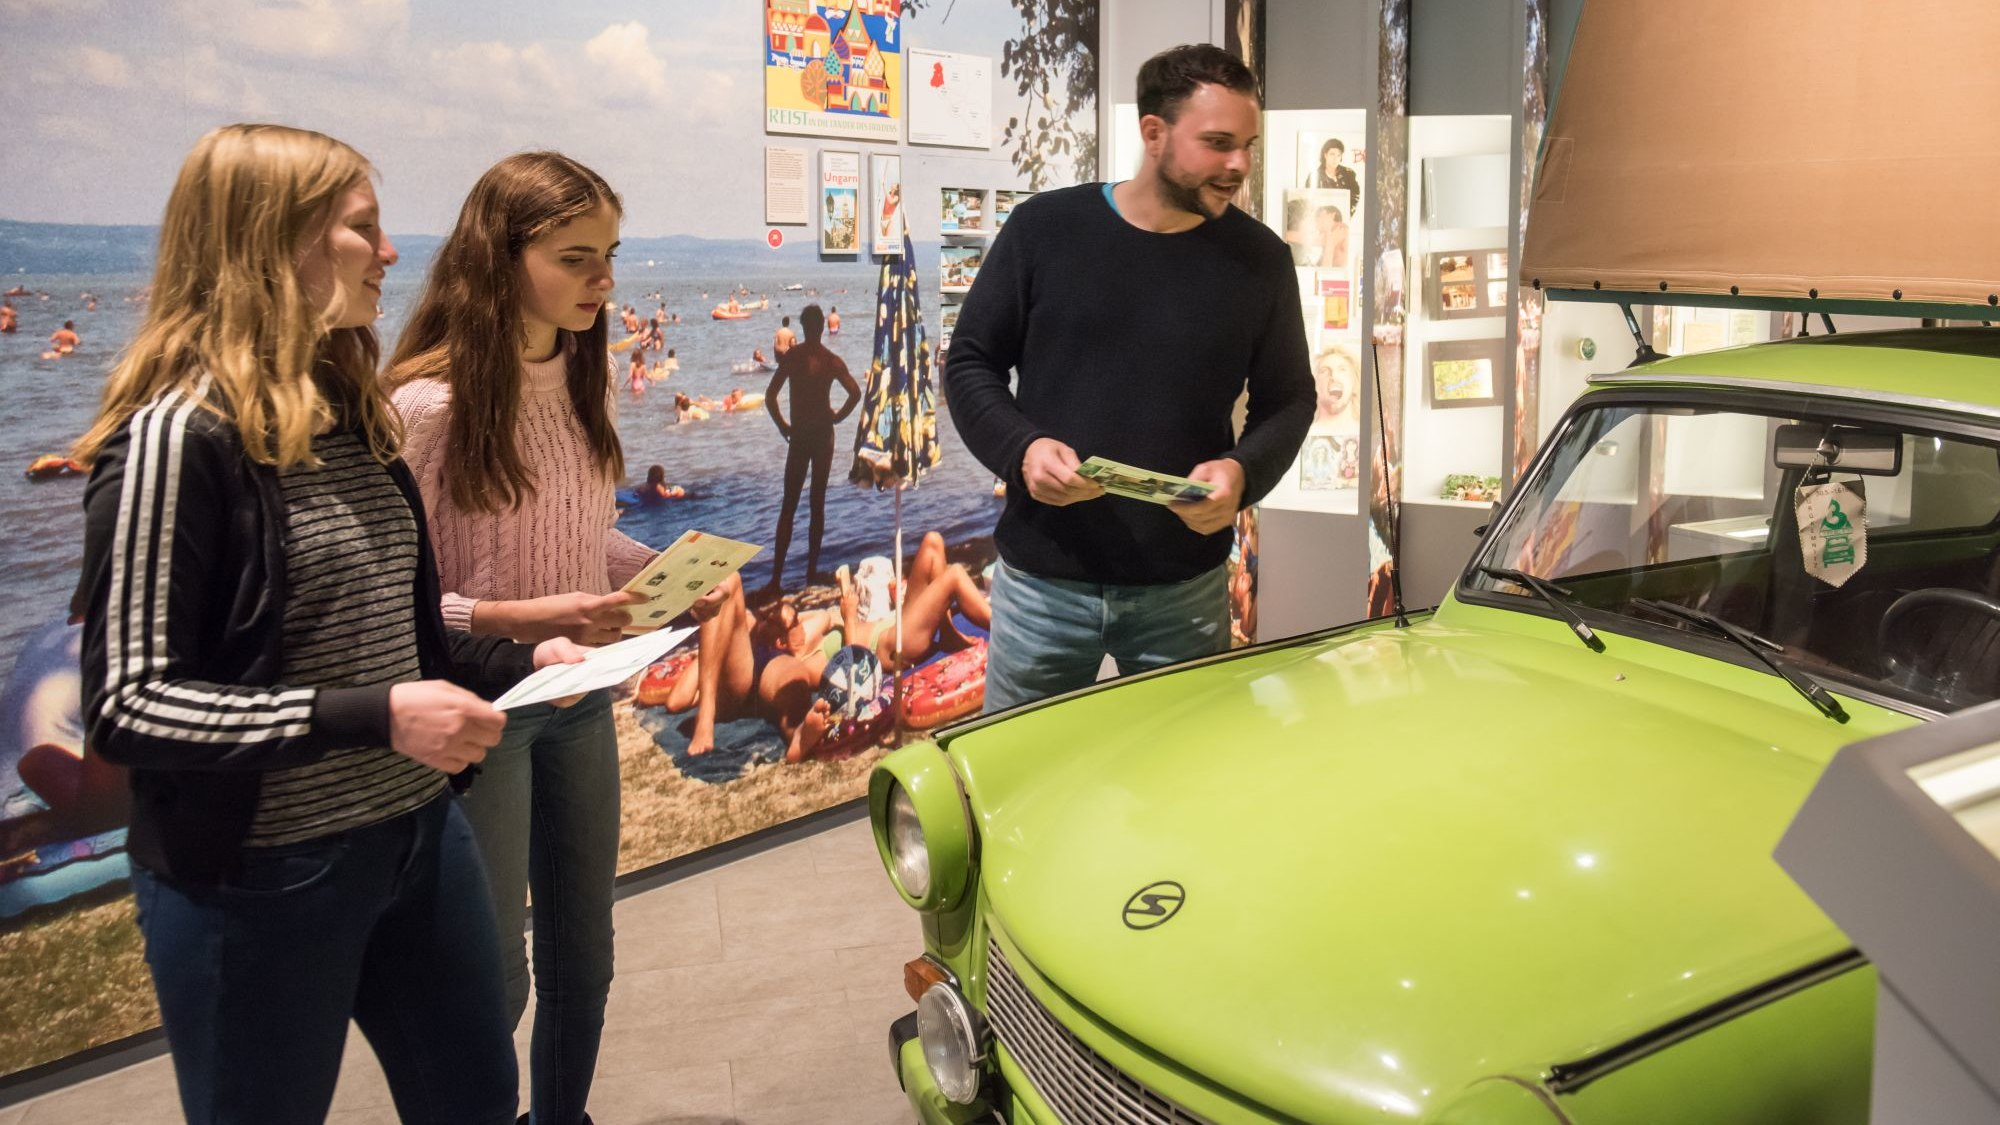 Two young girls and a young man are looking at the Trabi